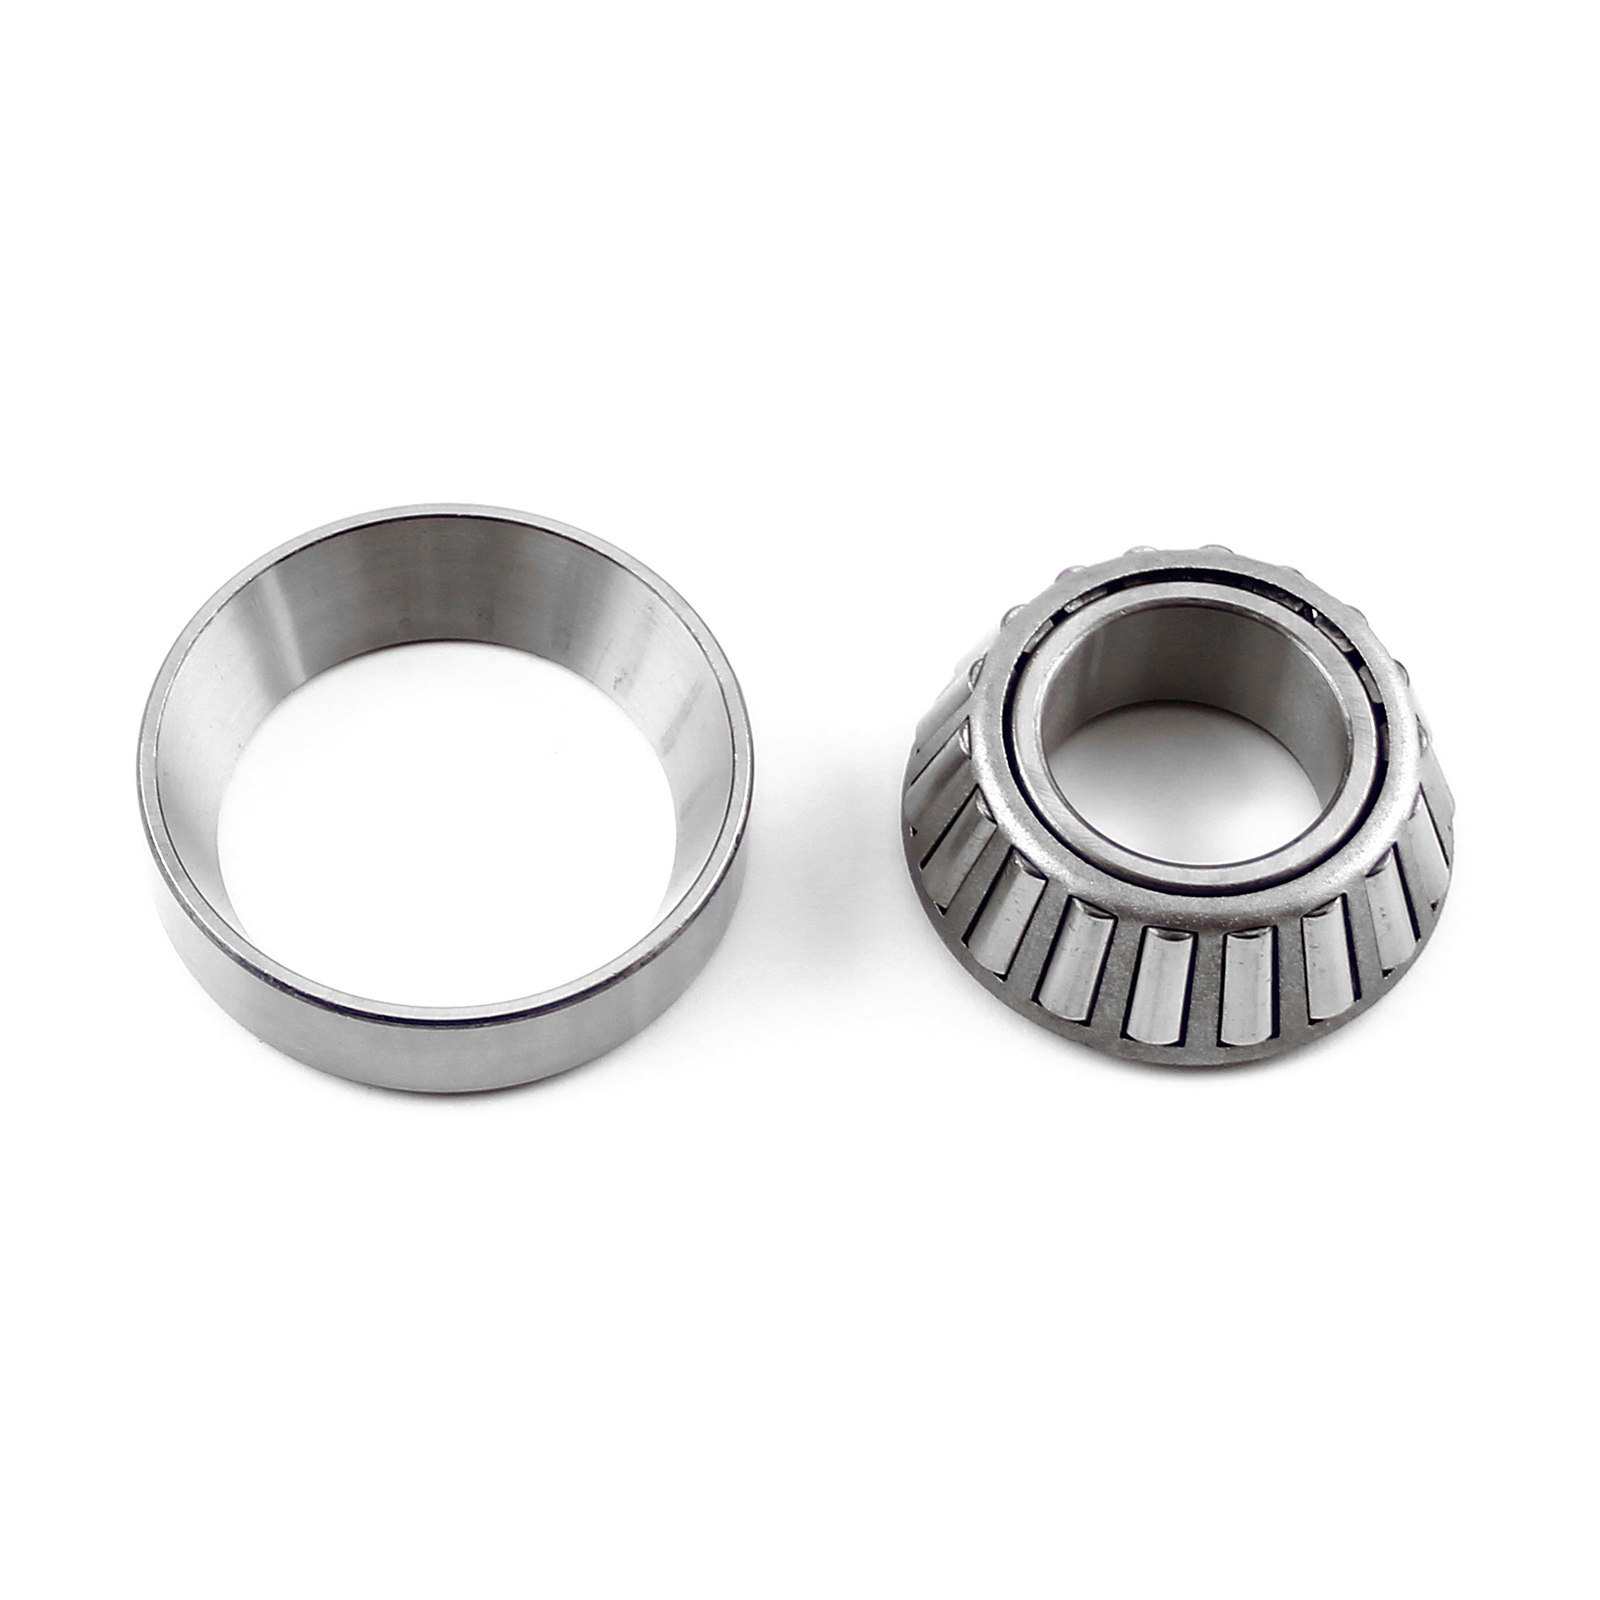 Pinion Bearing Industry Std Ref: M88048 / 010